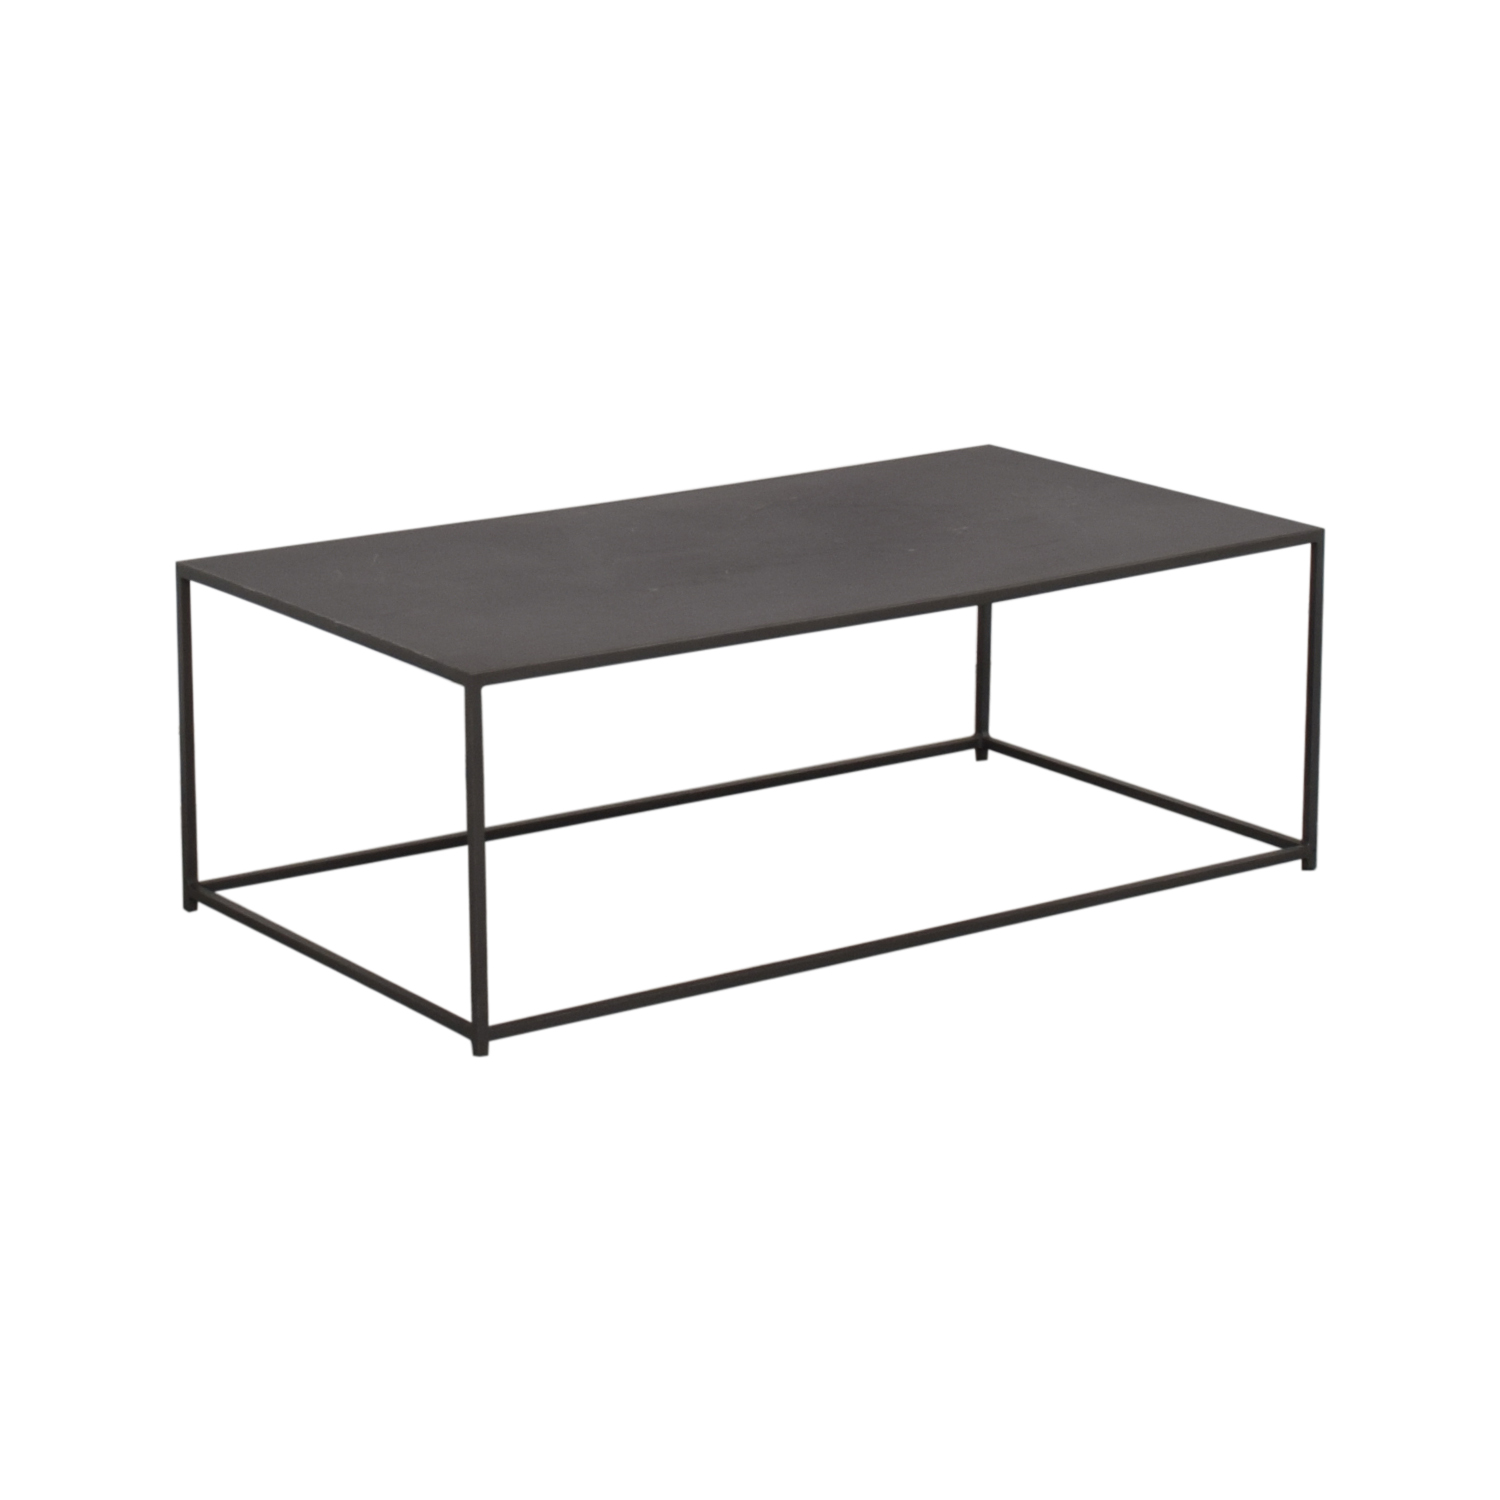 CB2 CB2 Mill Coffee Table used